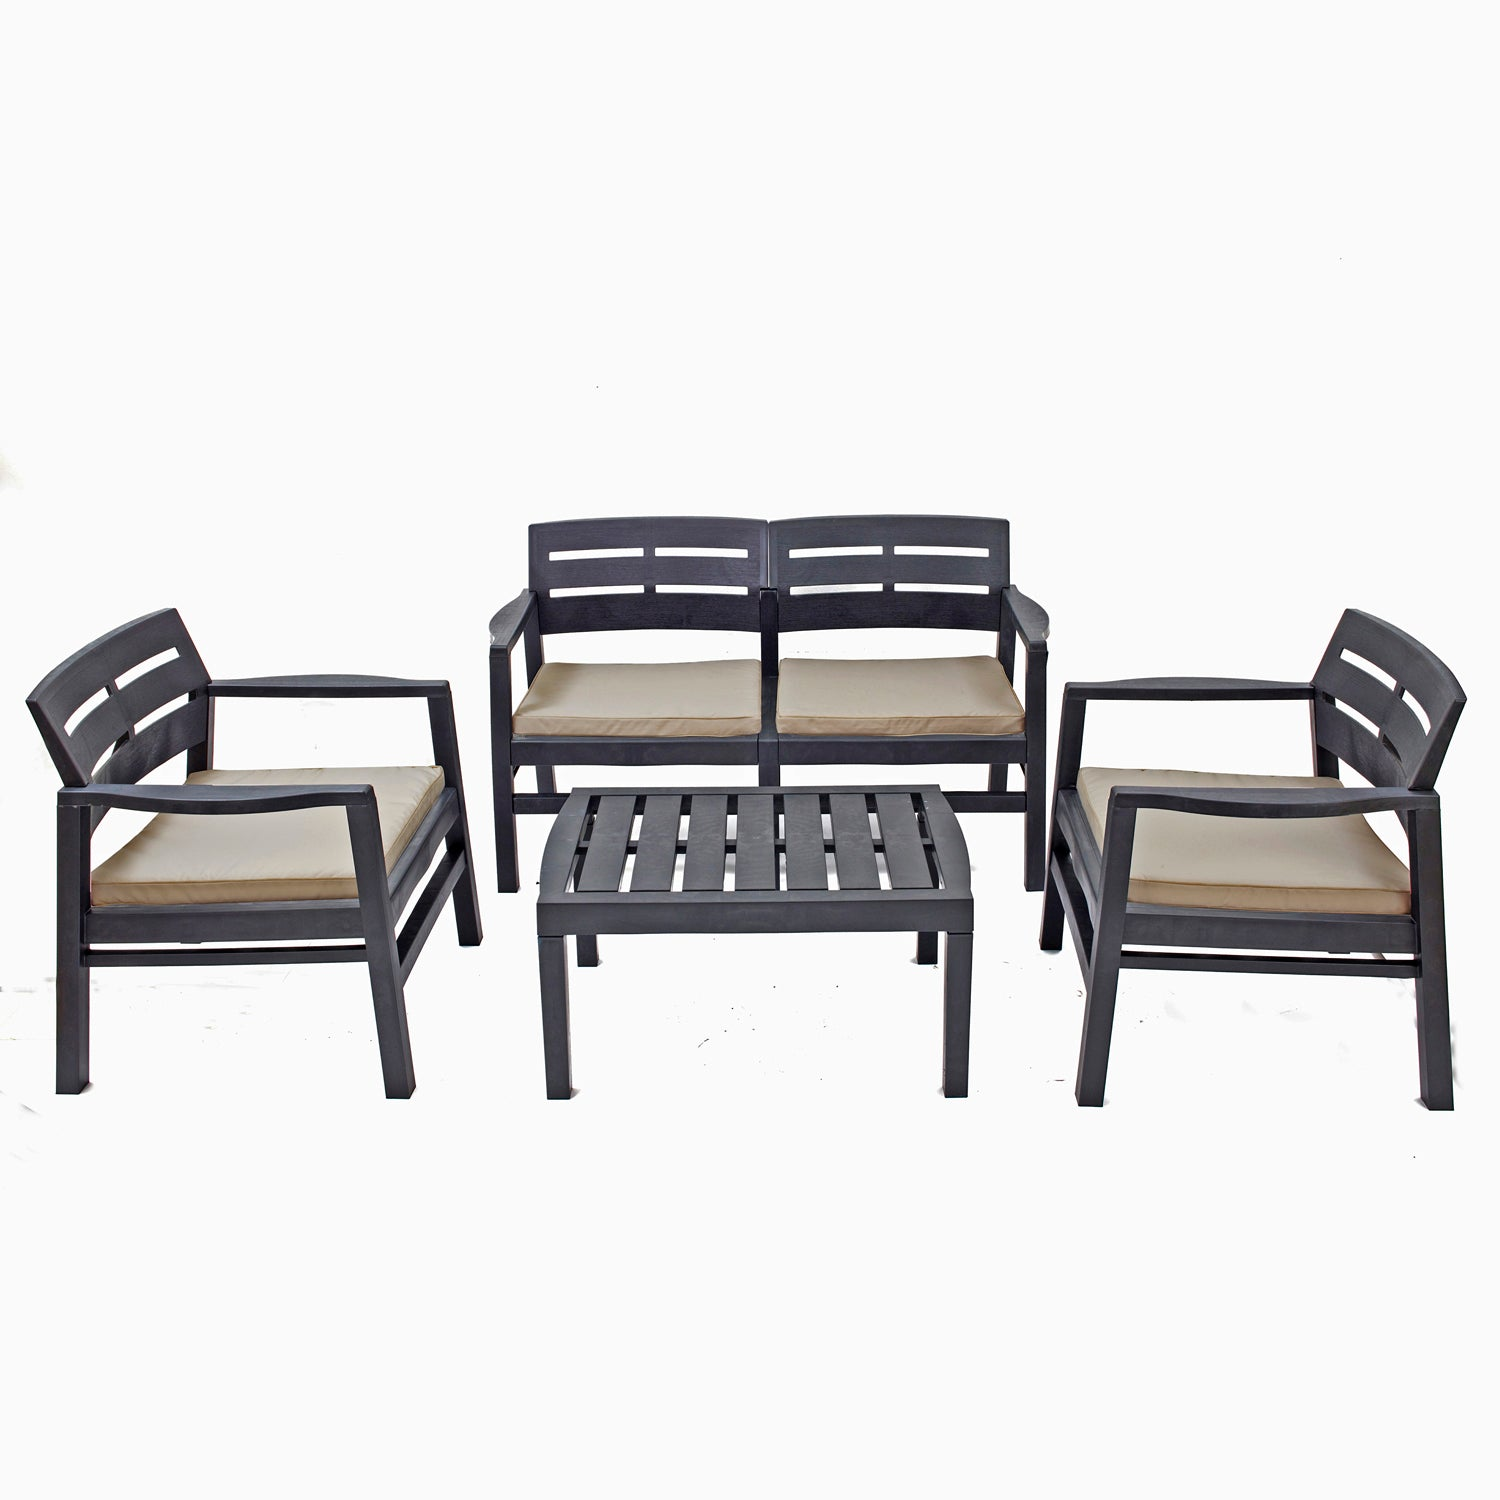 Trabella Venice Outdoor Garden Dining Set in Anthracite - Ruby's Garden Boutique